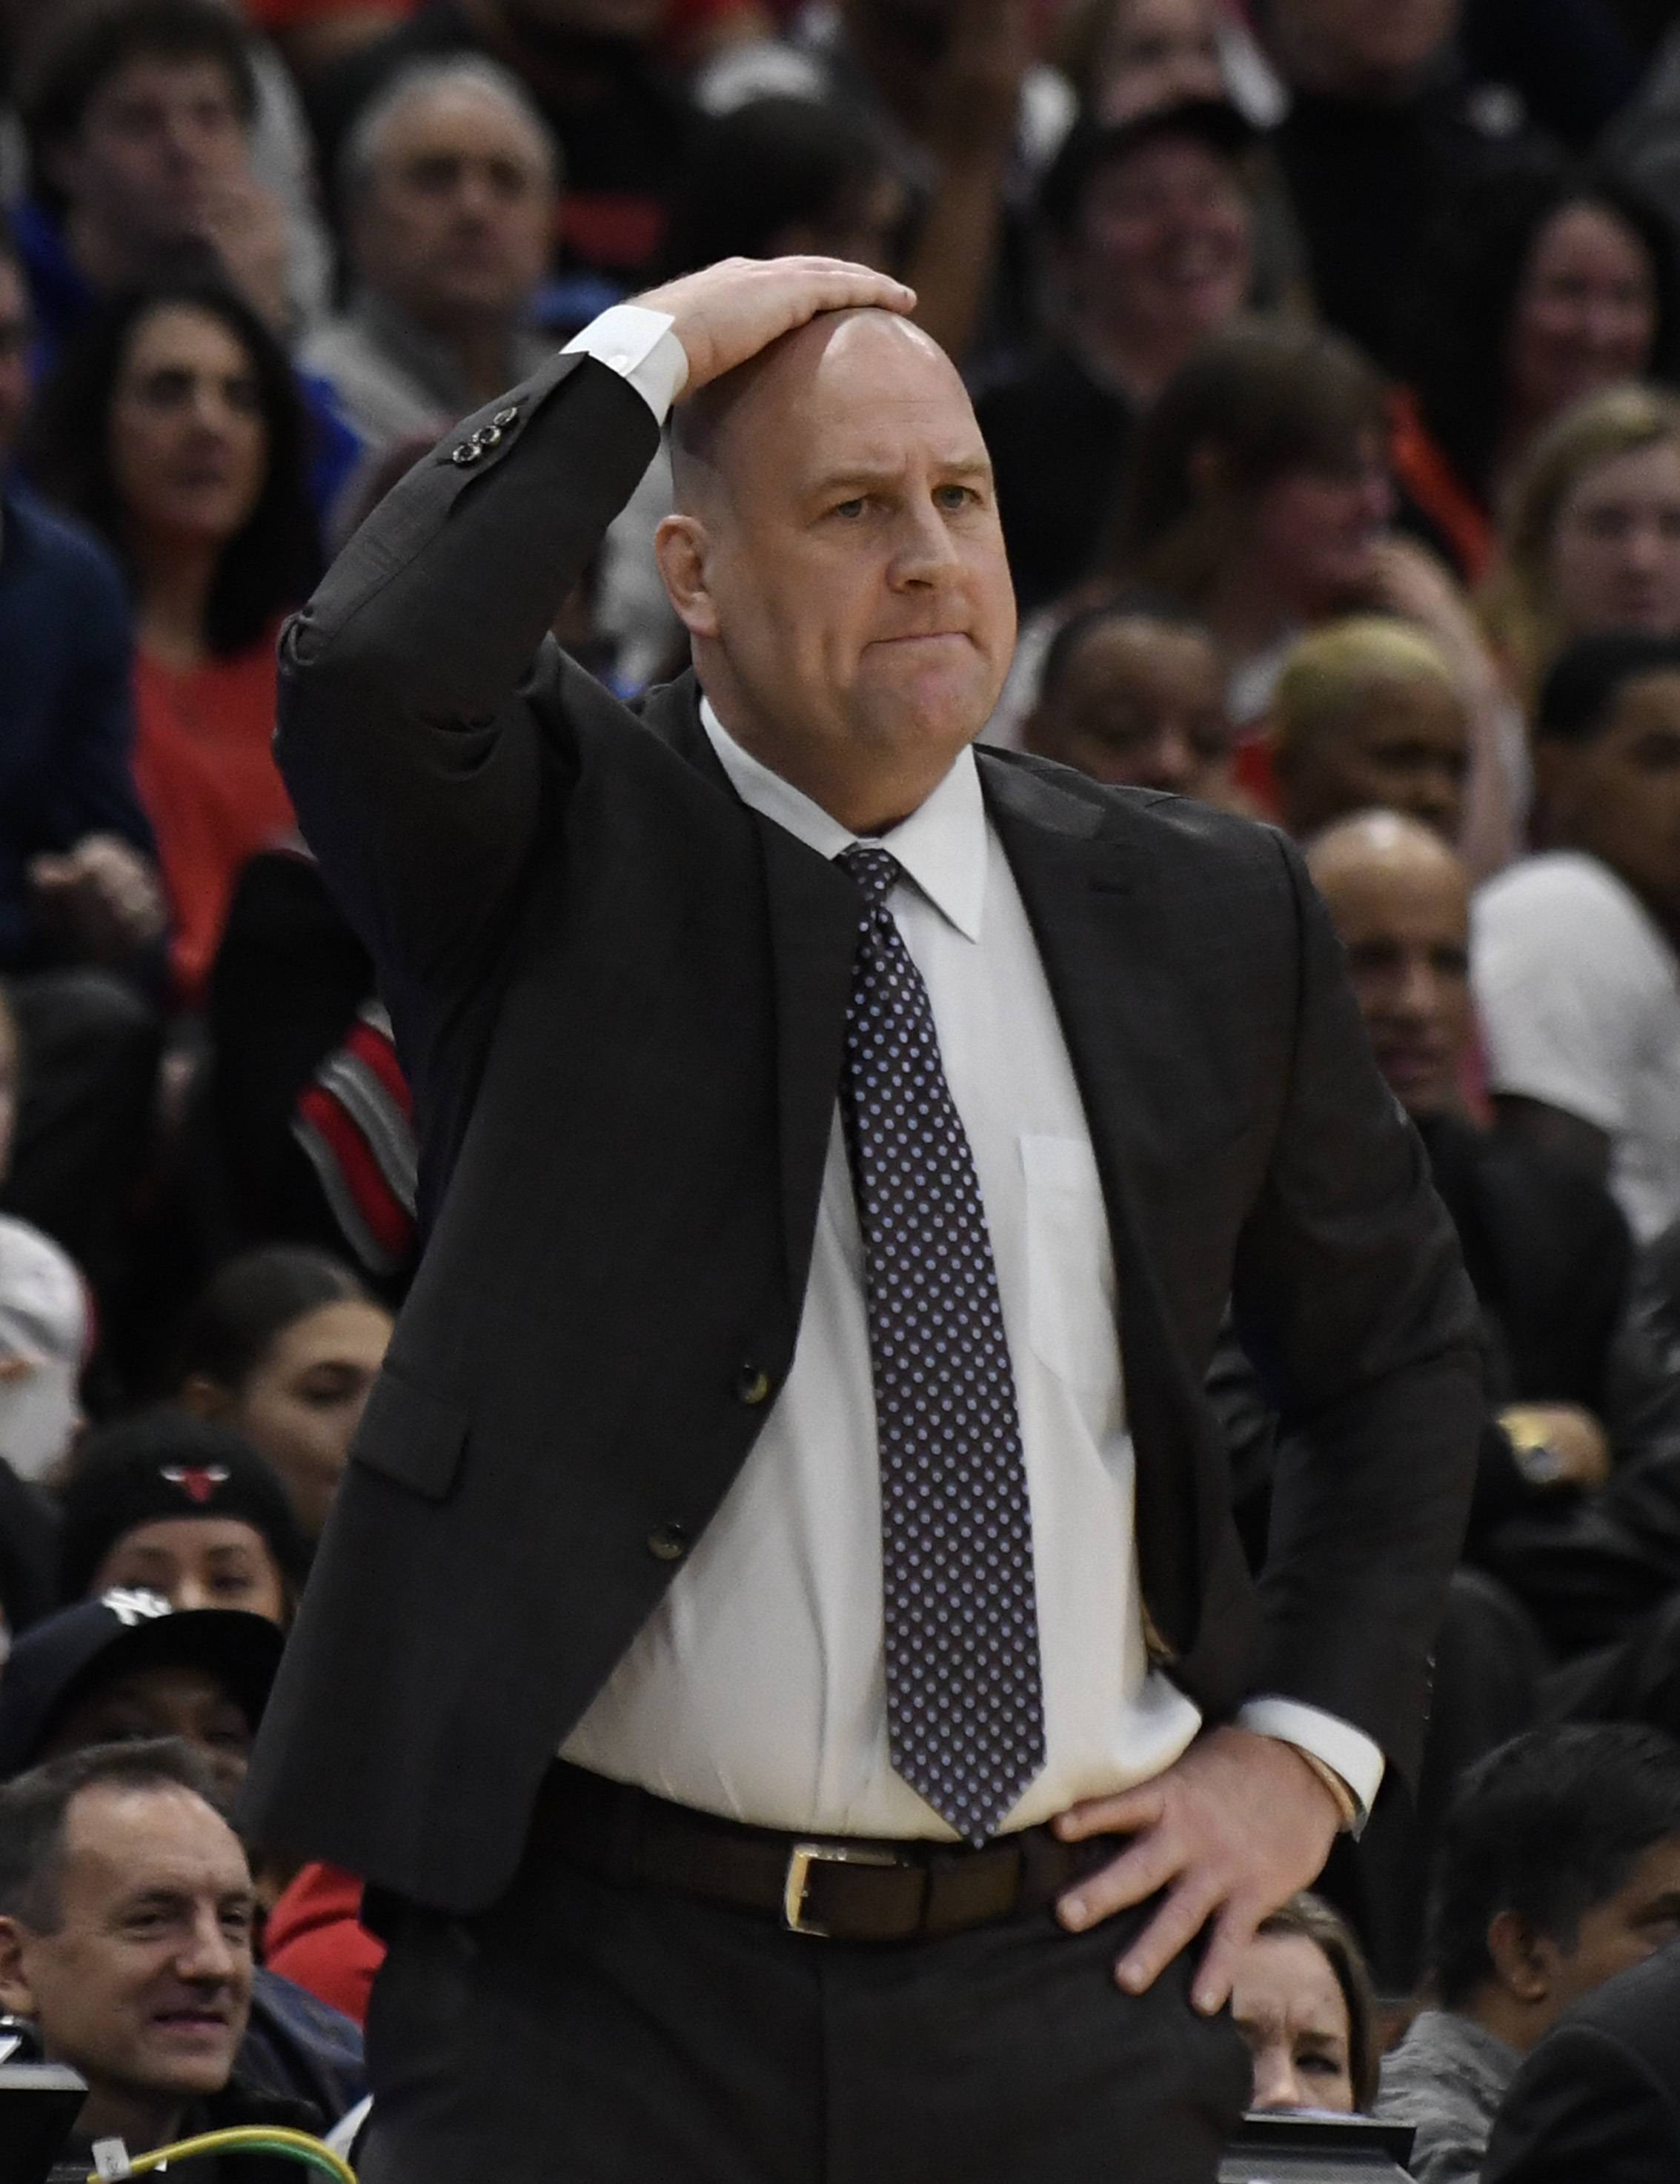 Bulls coach Jim Boylen is using drills he learned from Jud Heathcote at Michigan State 30 years ago to help guard Shaq Harrison improve his scoring skills. They worked for Magic Johnson, according to Boylen.